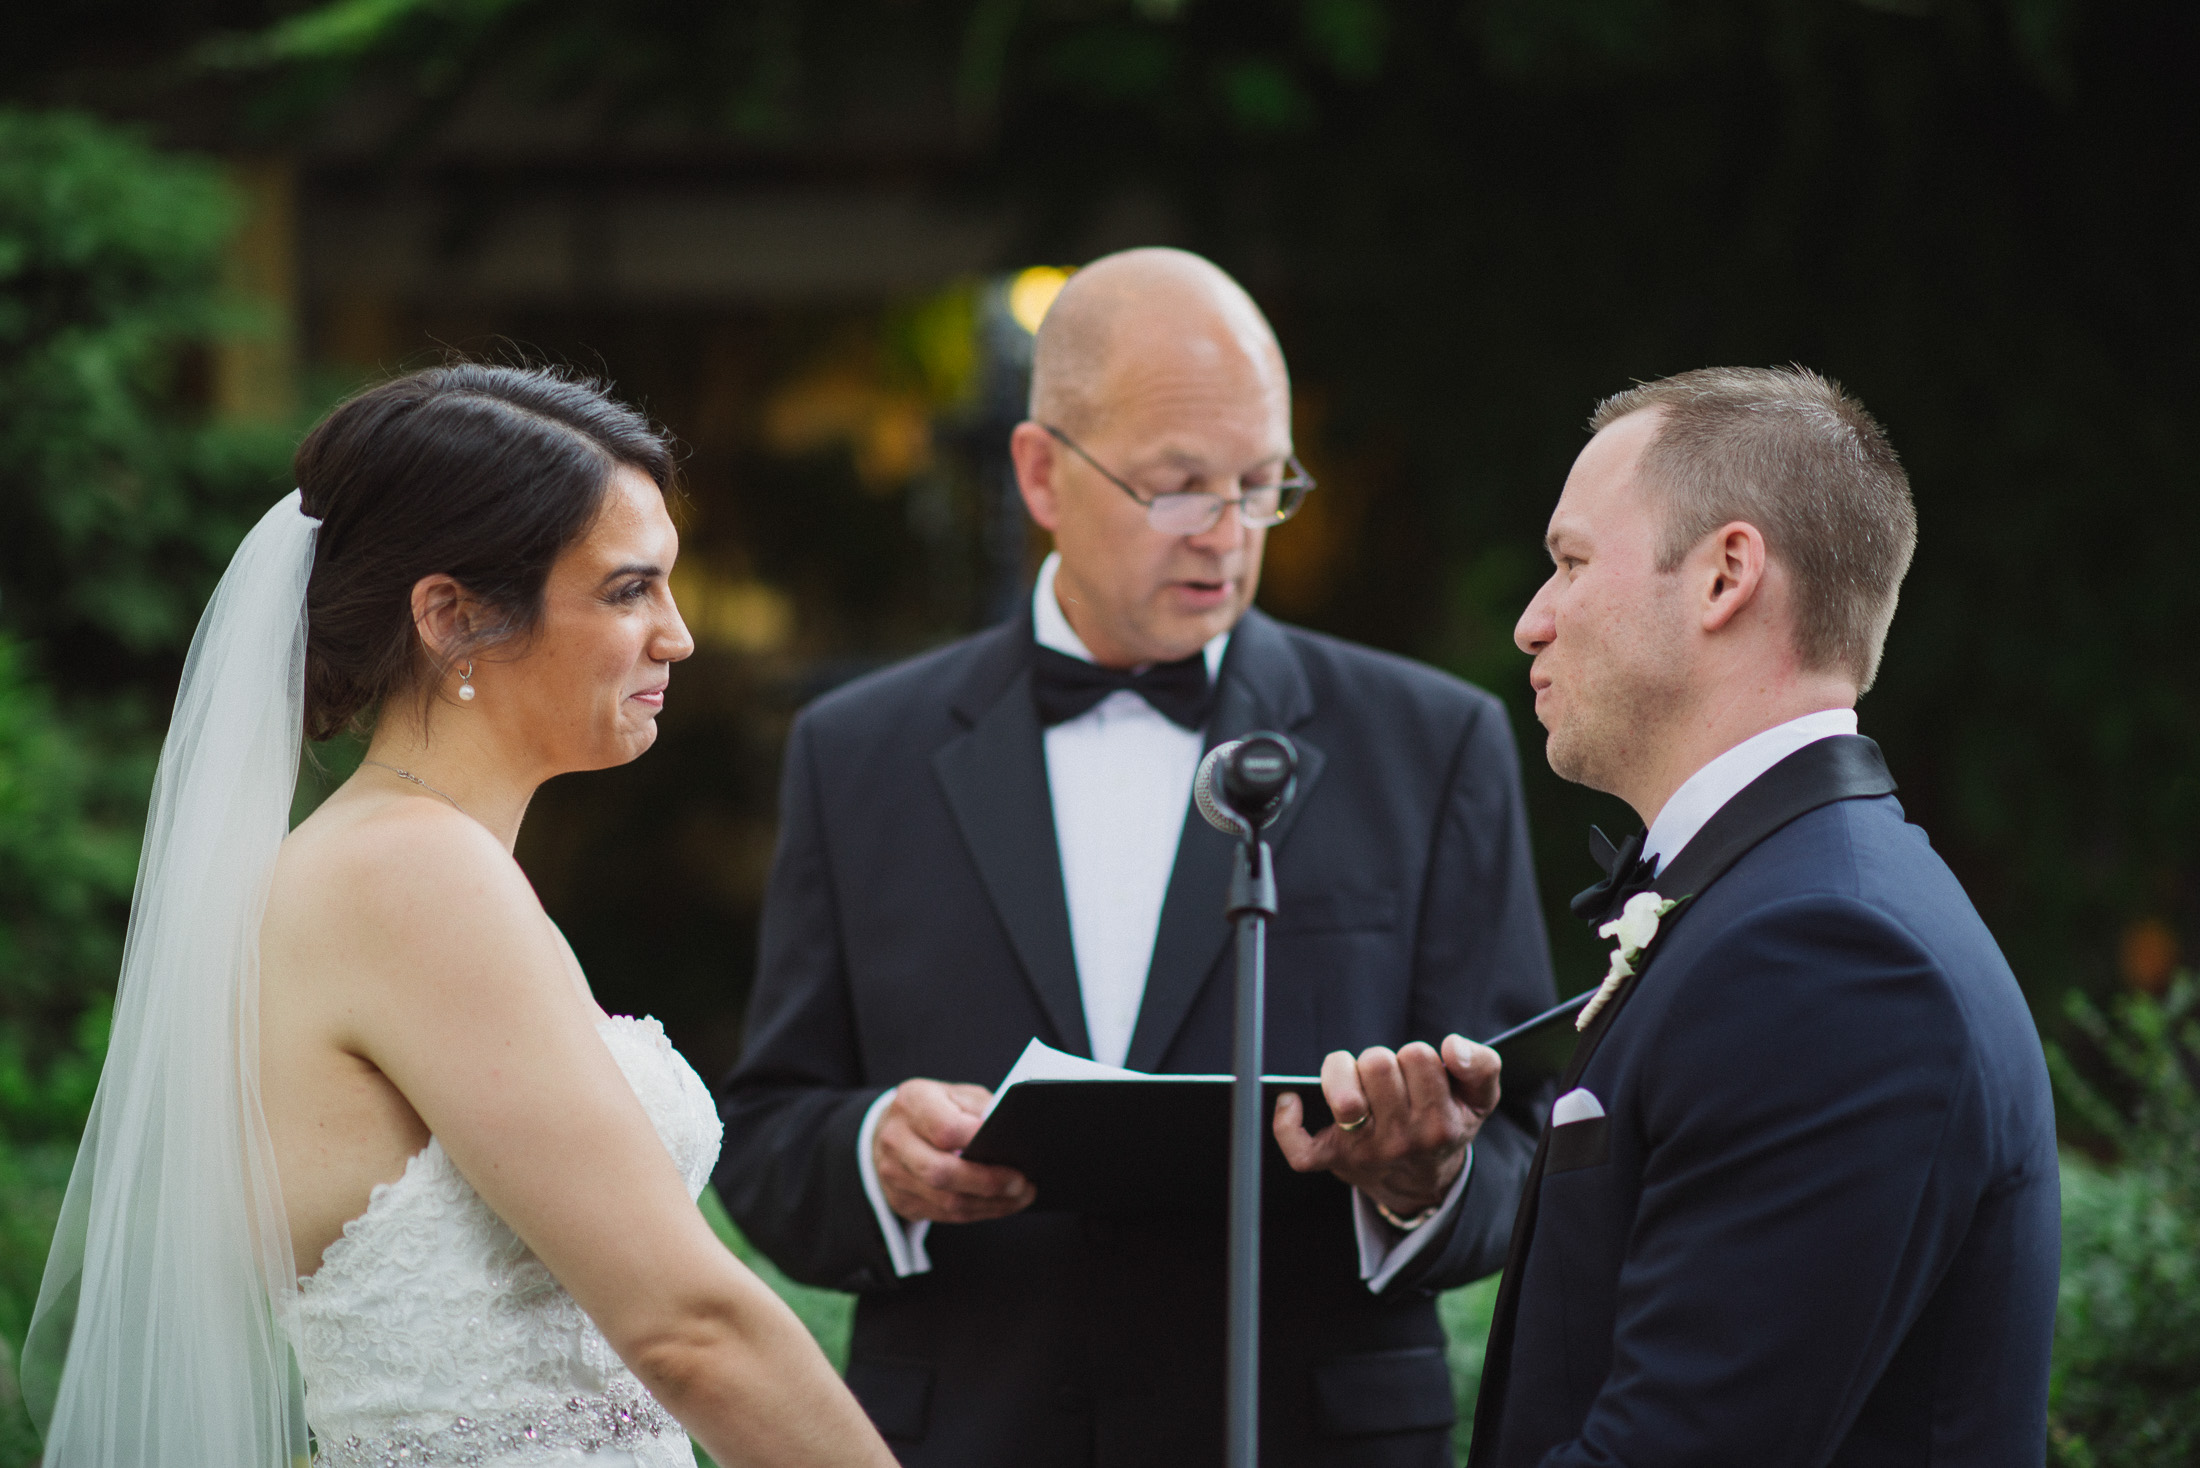 NH Wedding Photography: bride and groom at ceremony